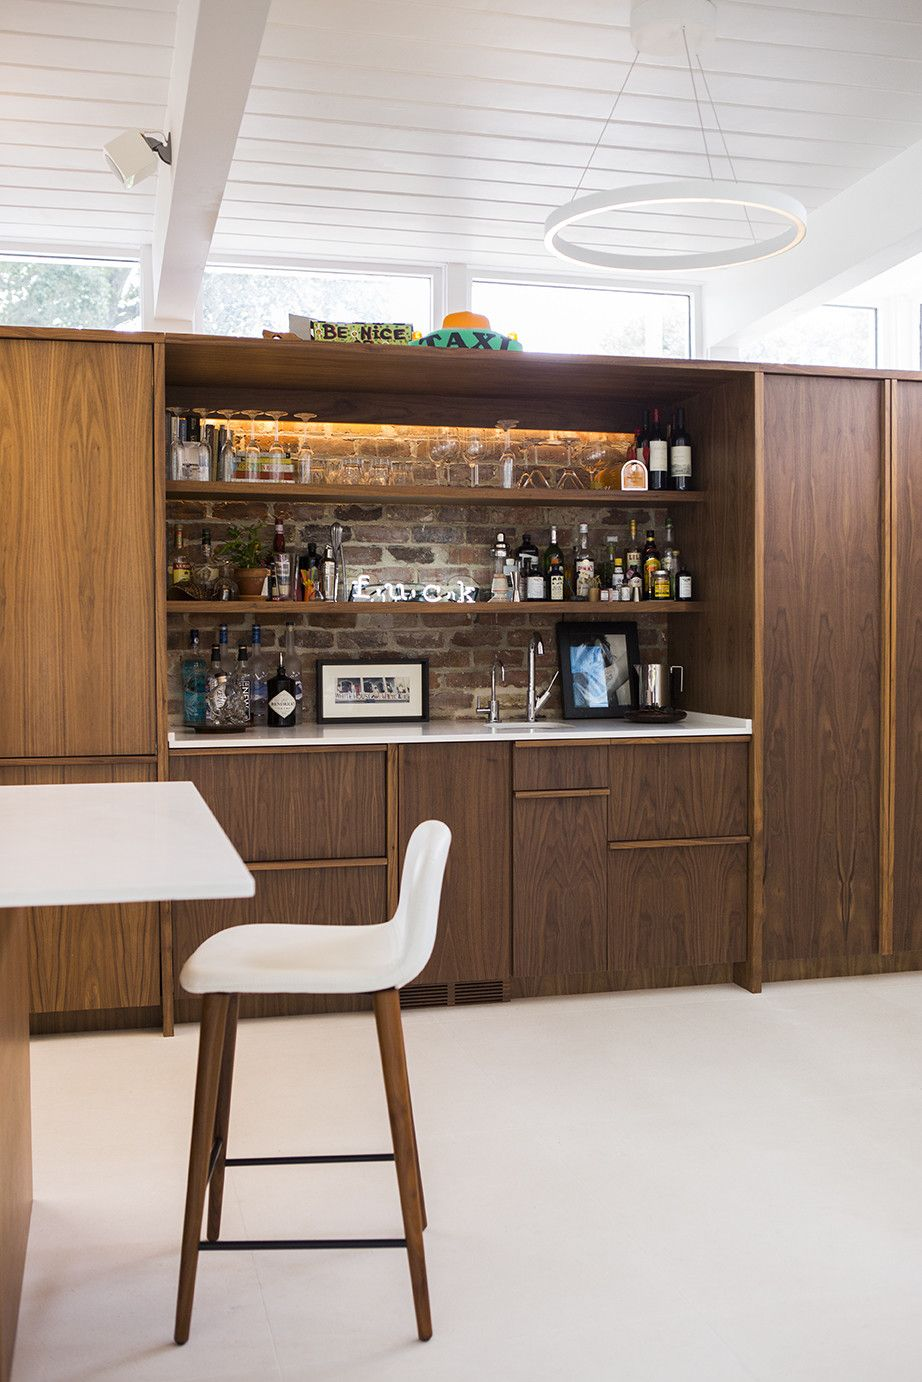 The kitchen and bar millwork is appleply with a walnut veneer